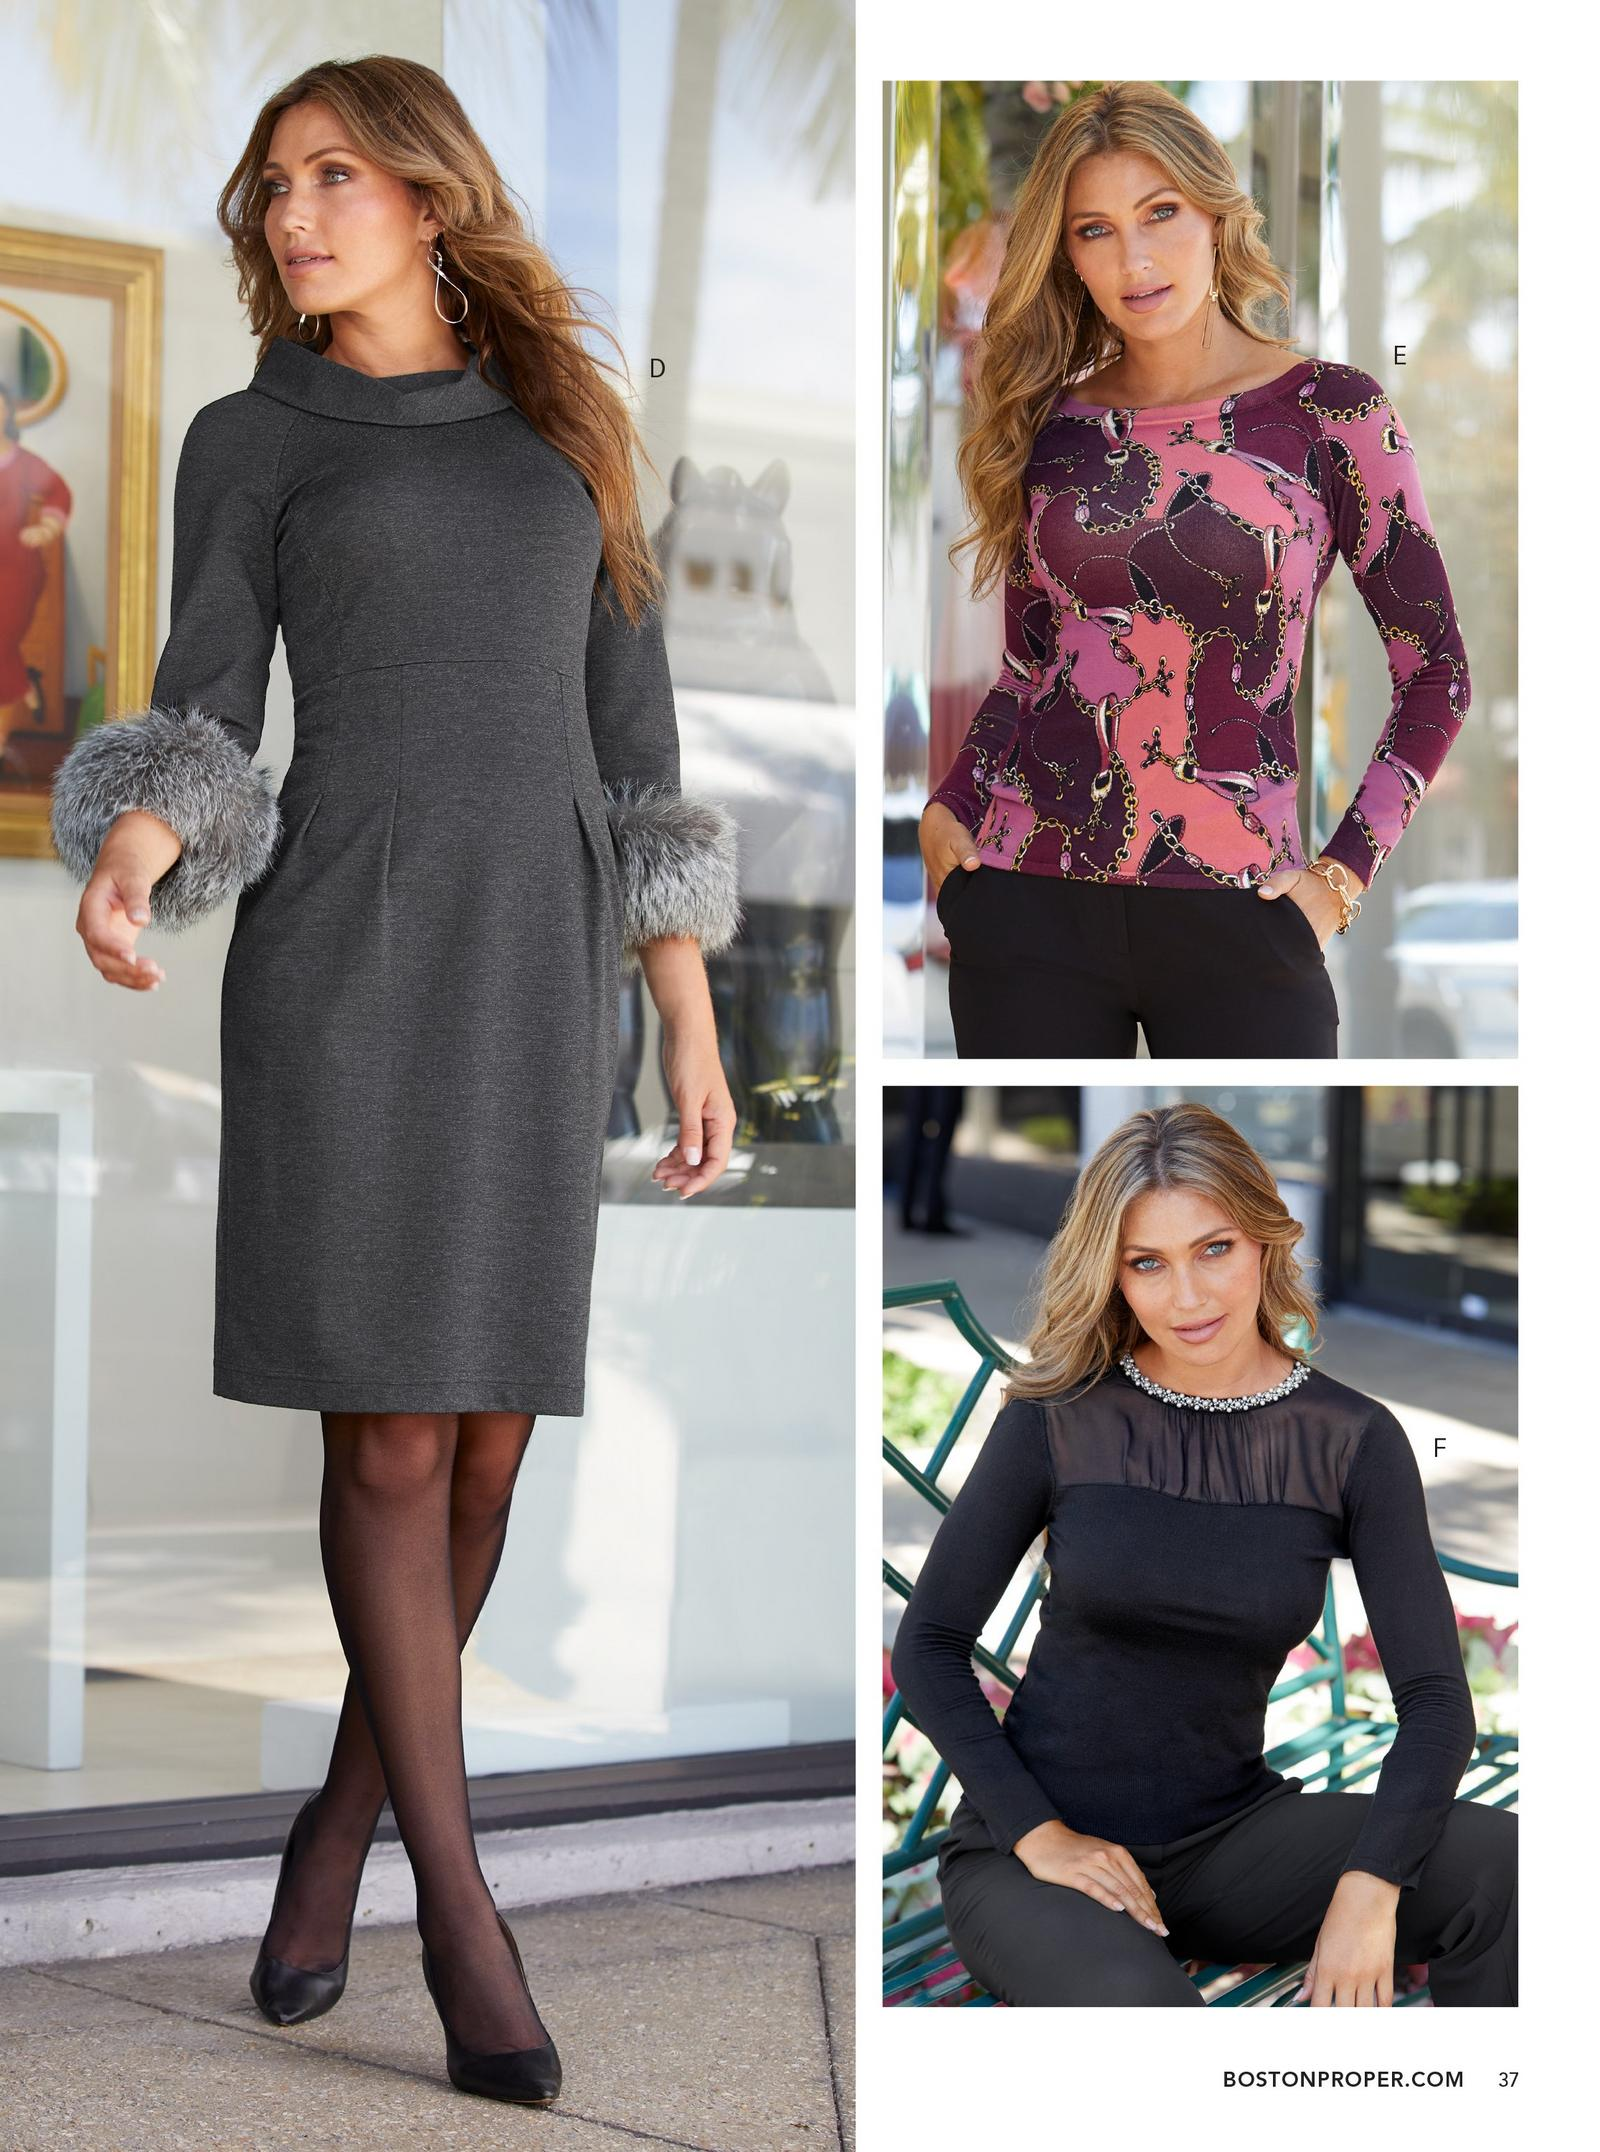 left model: faux fur cuff dress in gray. top right: pink and purple status print sweater. bottom right: black pearl trim mesh sweater.